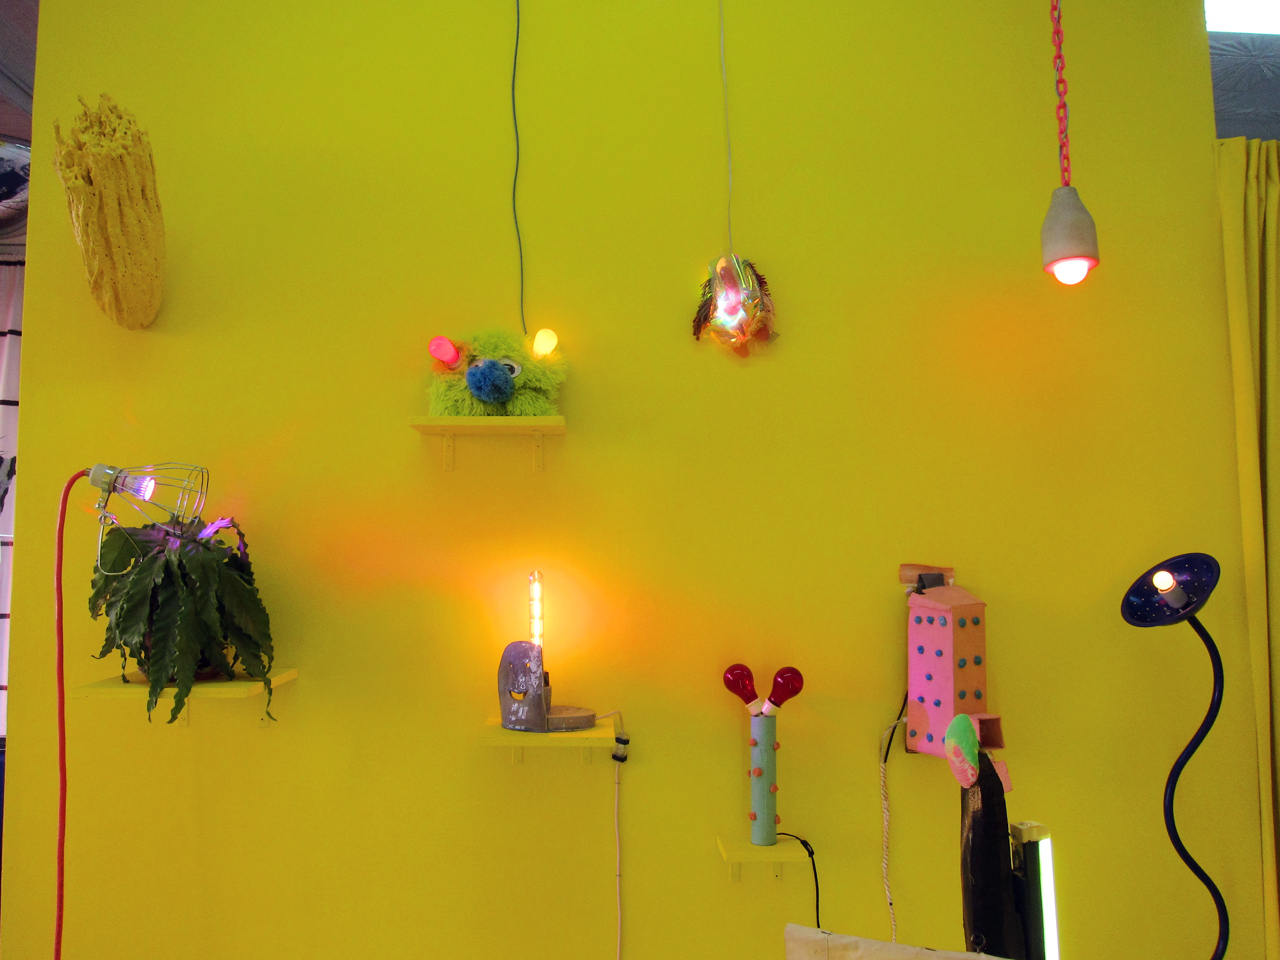 Installation view of 'The Lamp Show' at 99¢ Plus